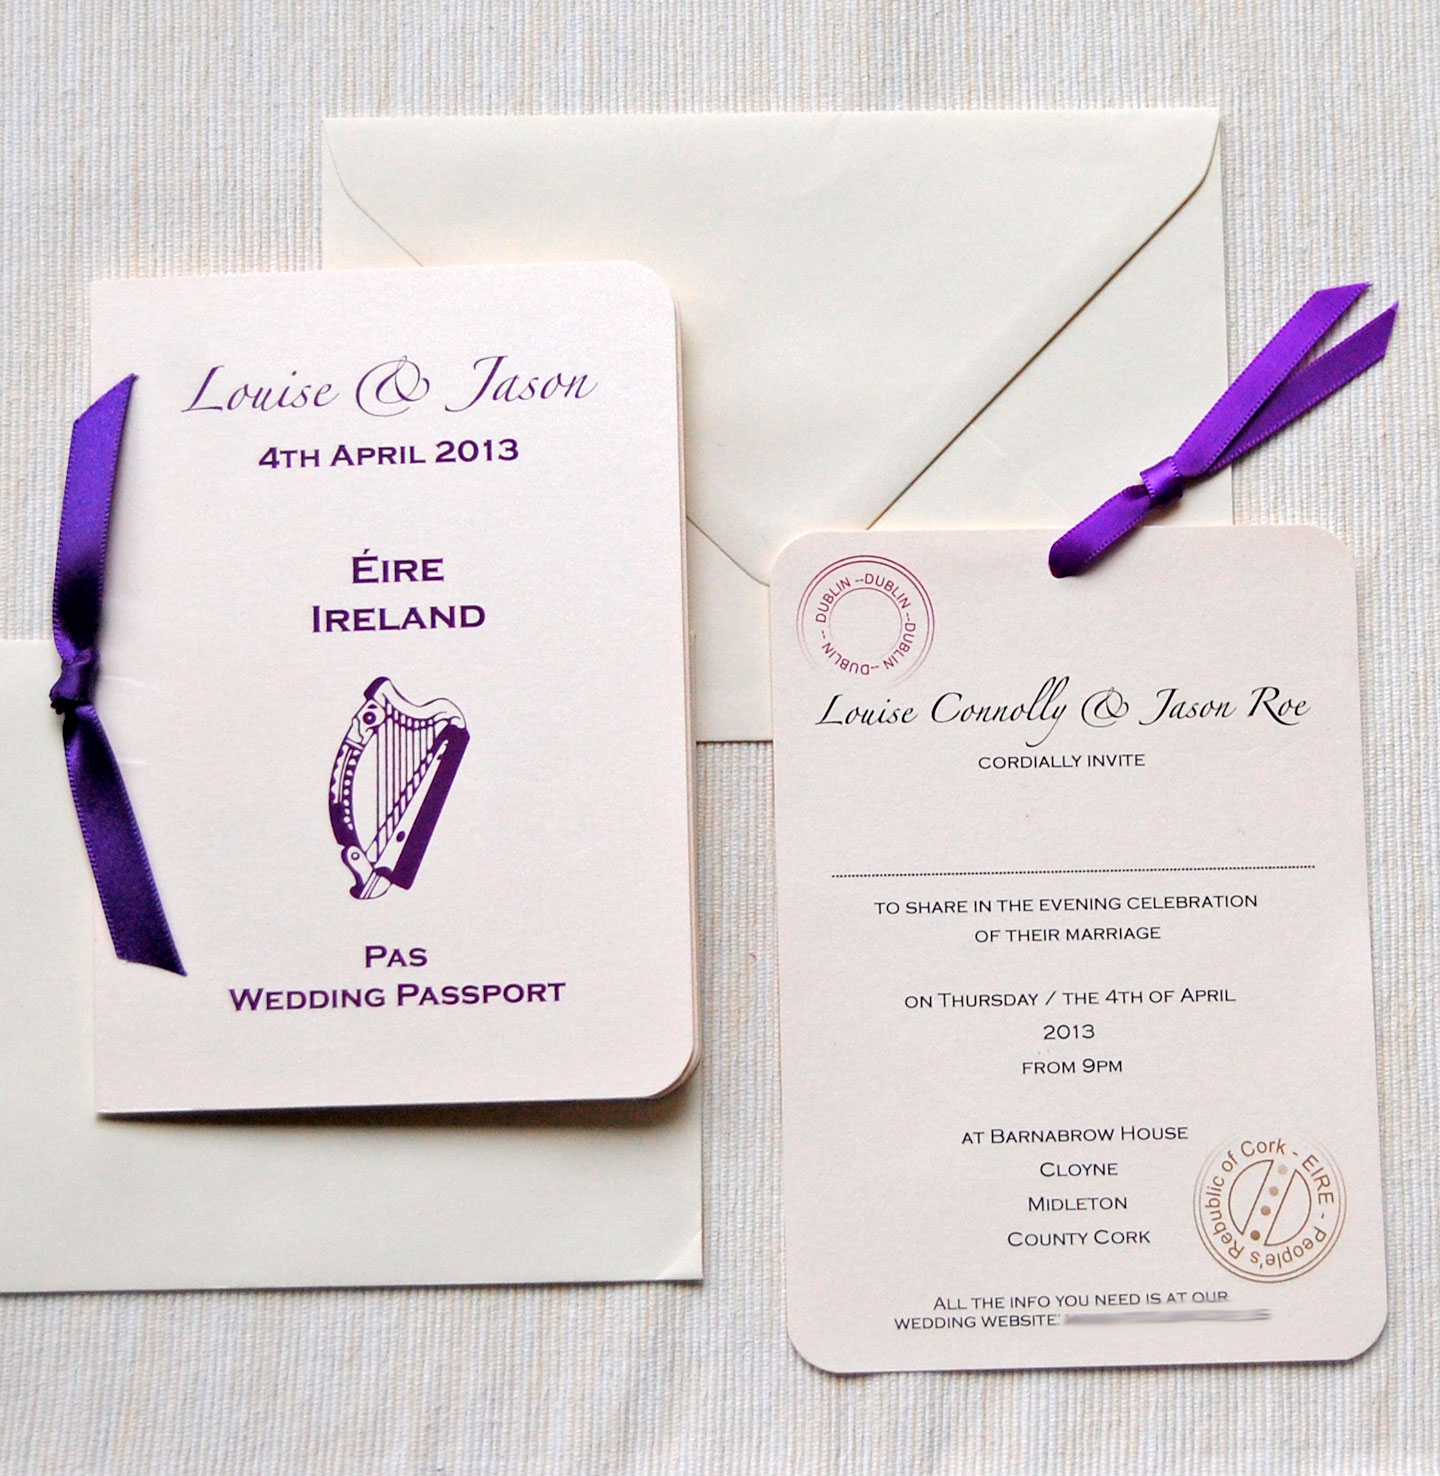 wedding invitation kits staples canada - 28 images - staples wedding ...